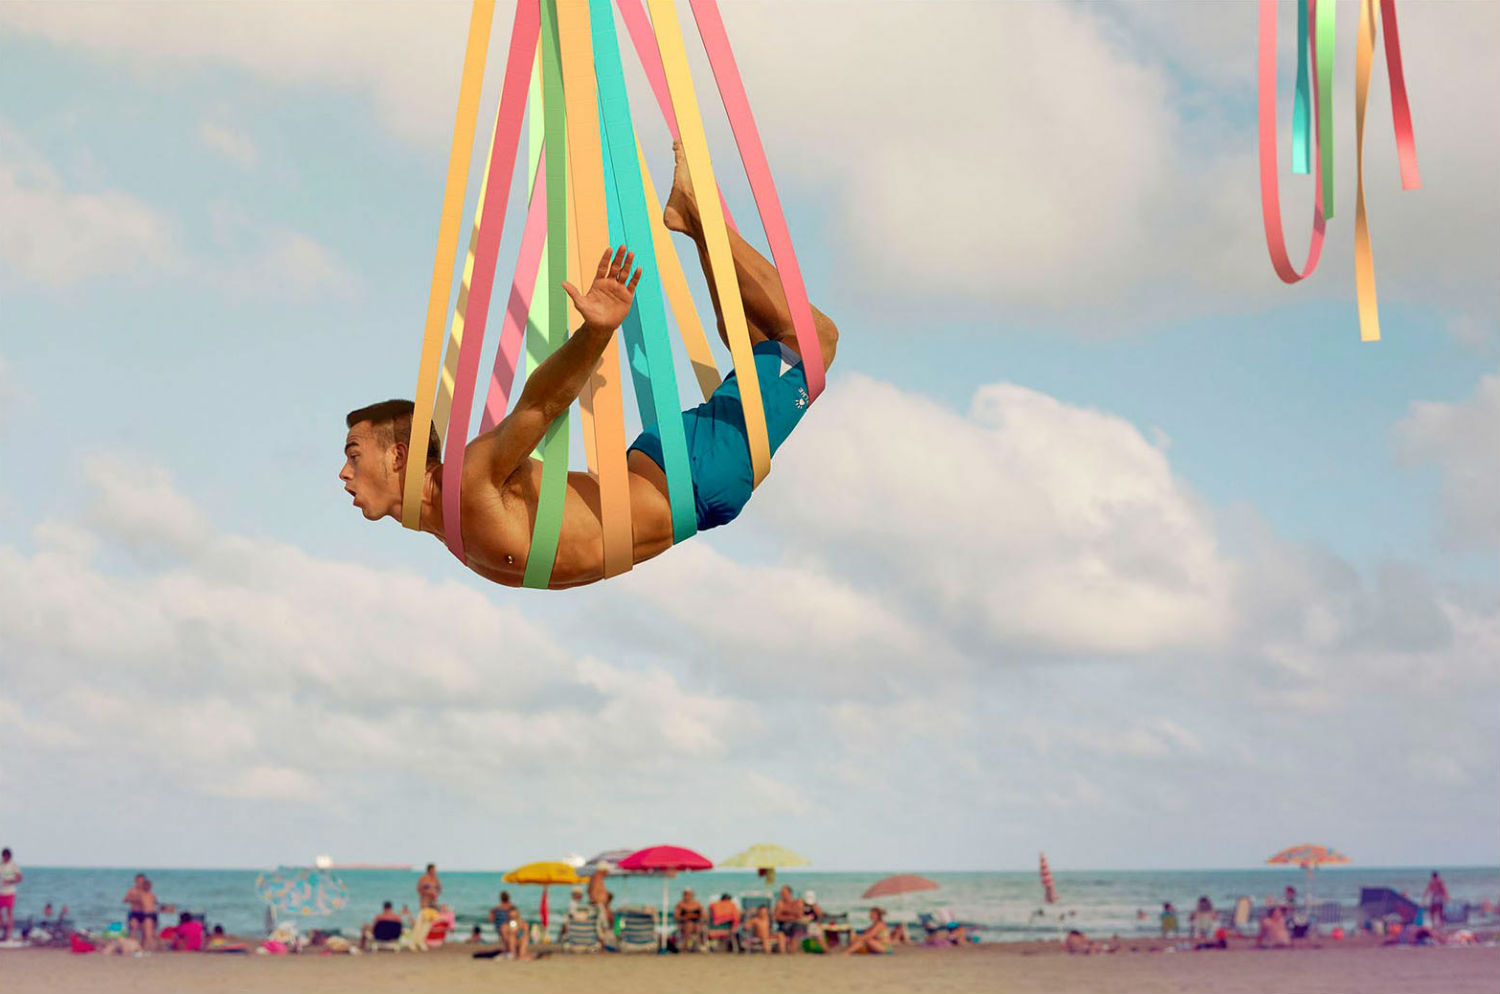 dimitri daniloff meshalogy photography colour beach acrobatics rainbow